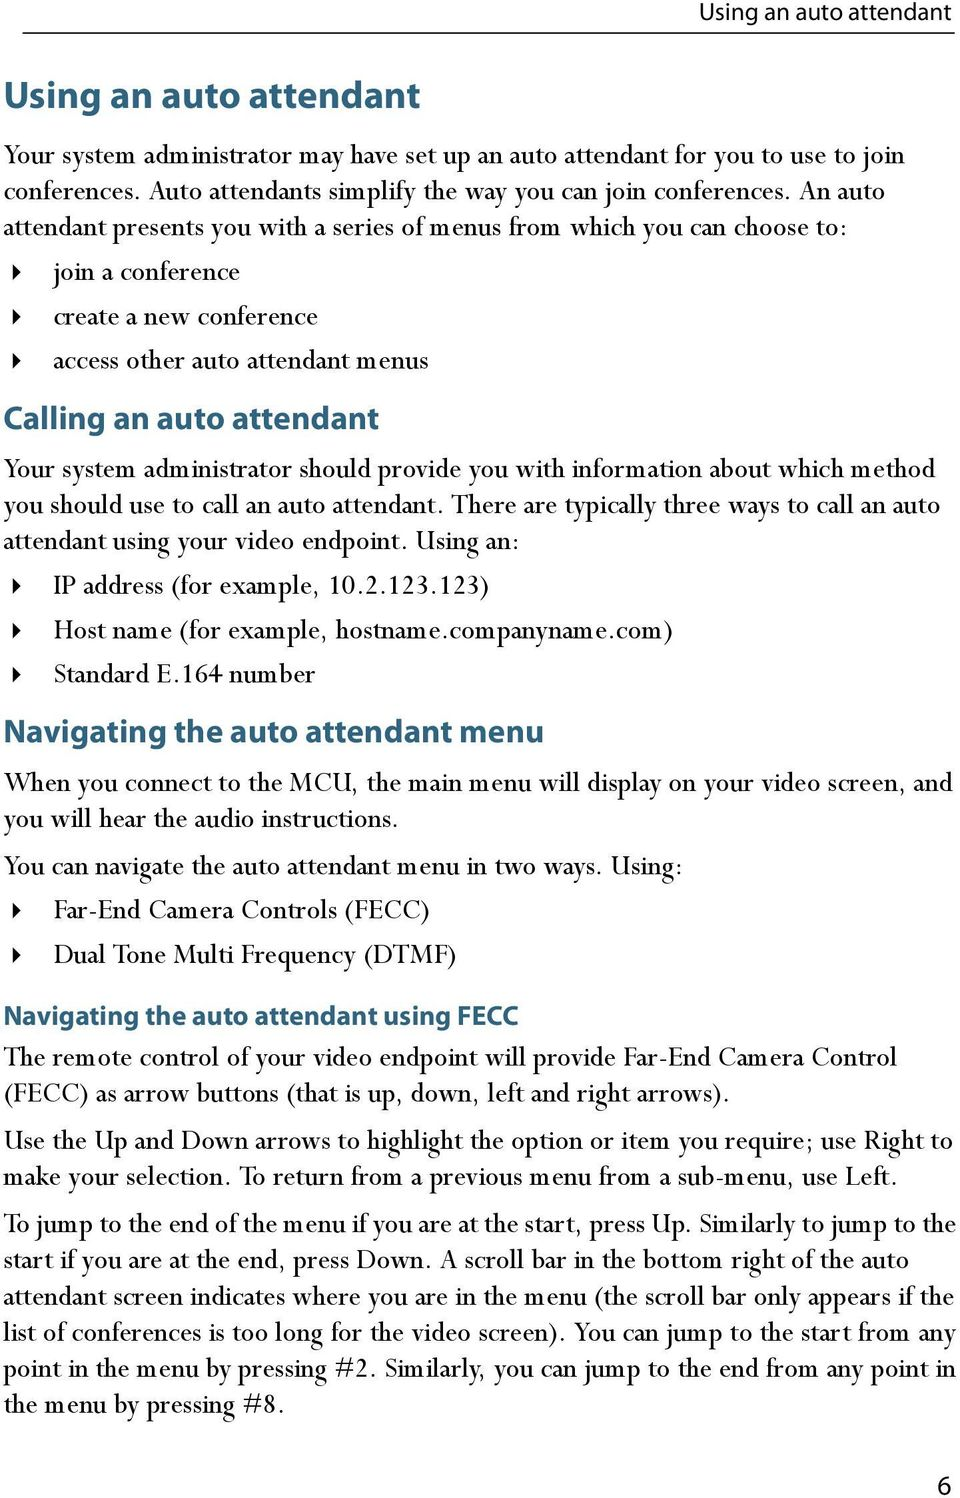 An auto attendant presents you with a series of menus from which you can choose to: join a conference create a new conference access other auto attendant menus Calling an auto attendant Your system